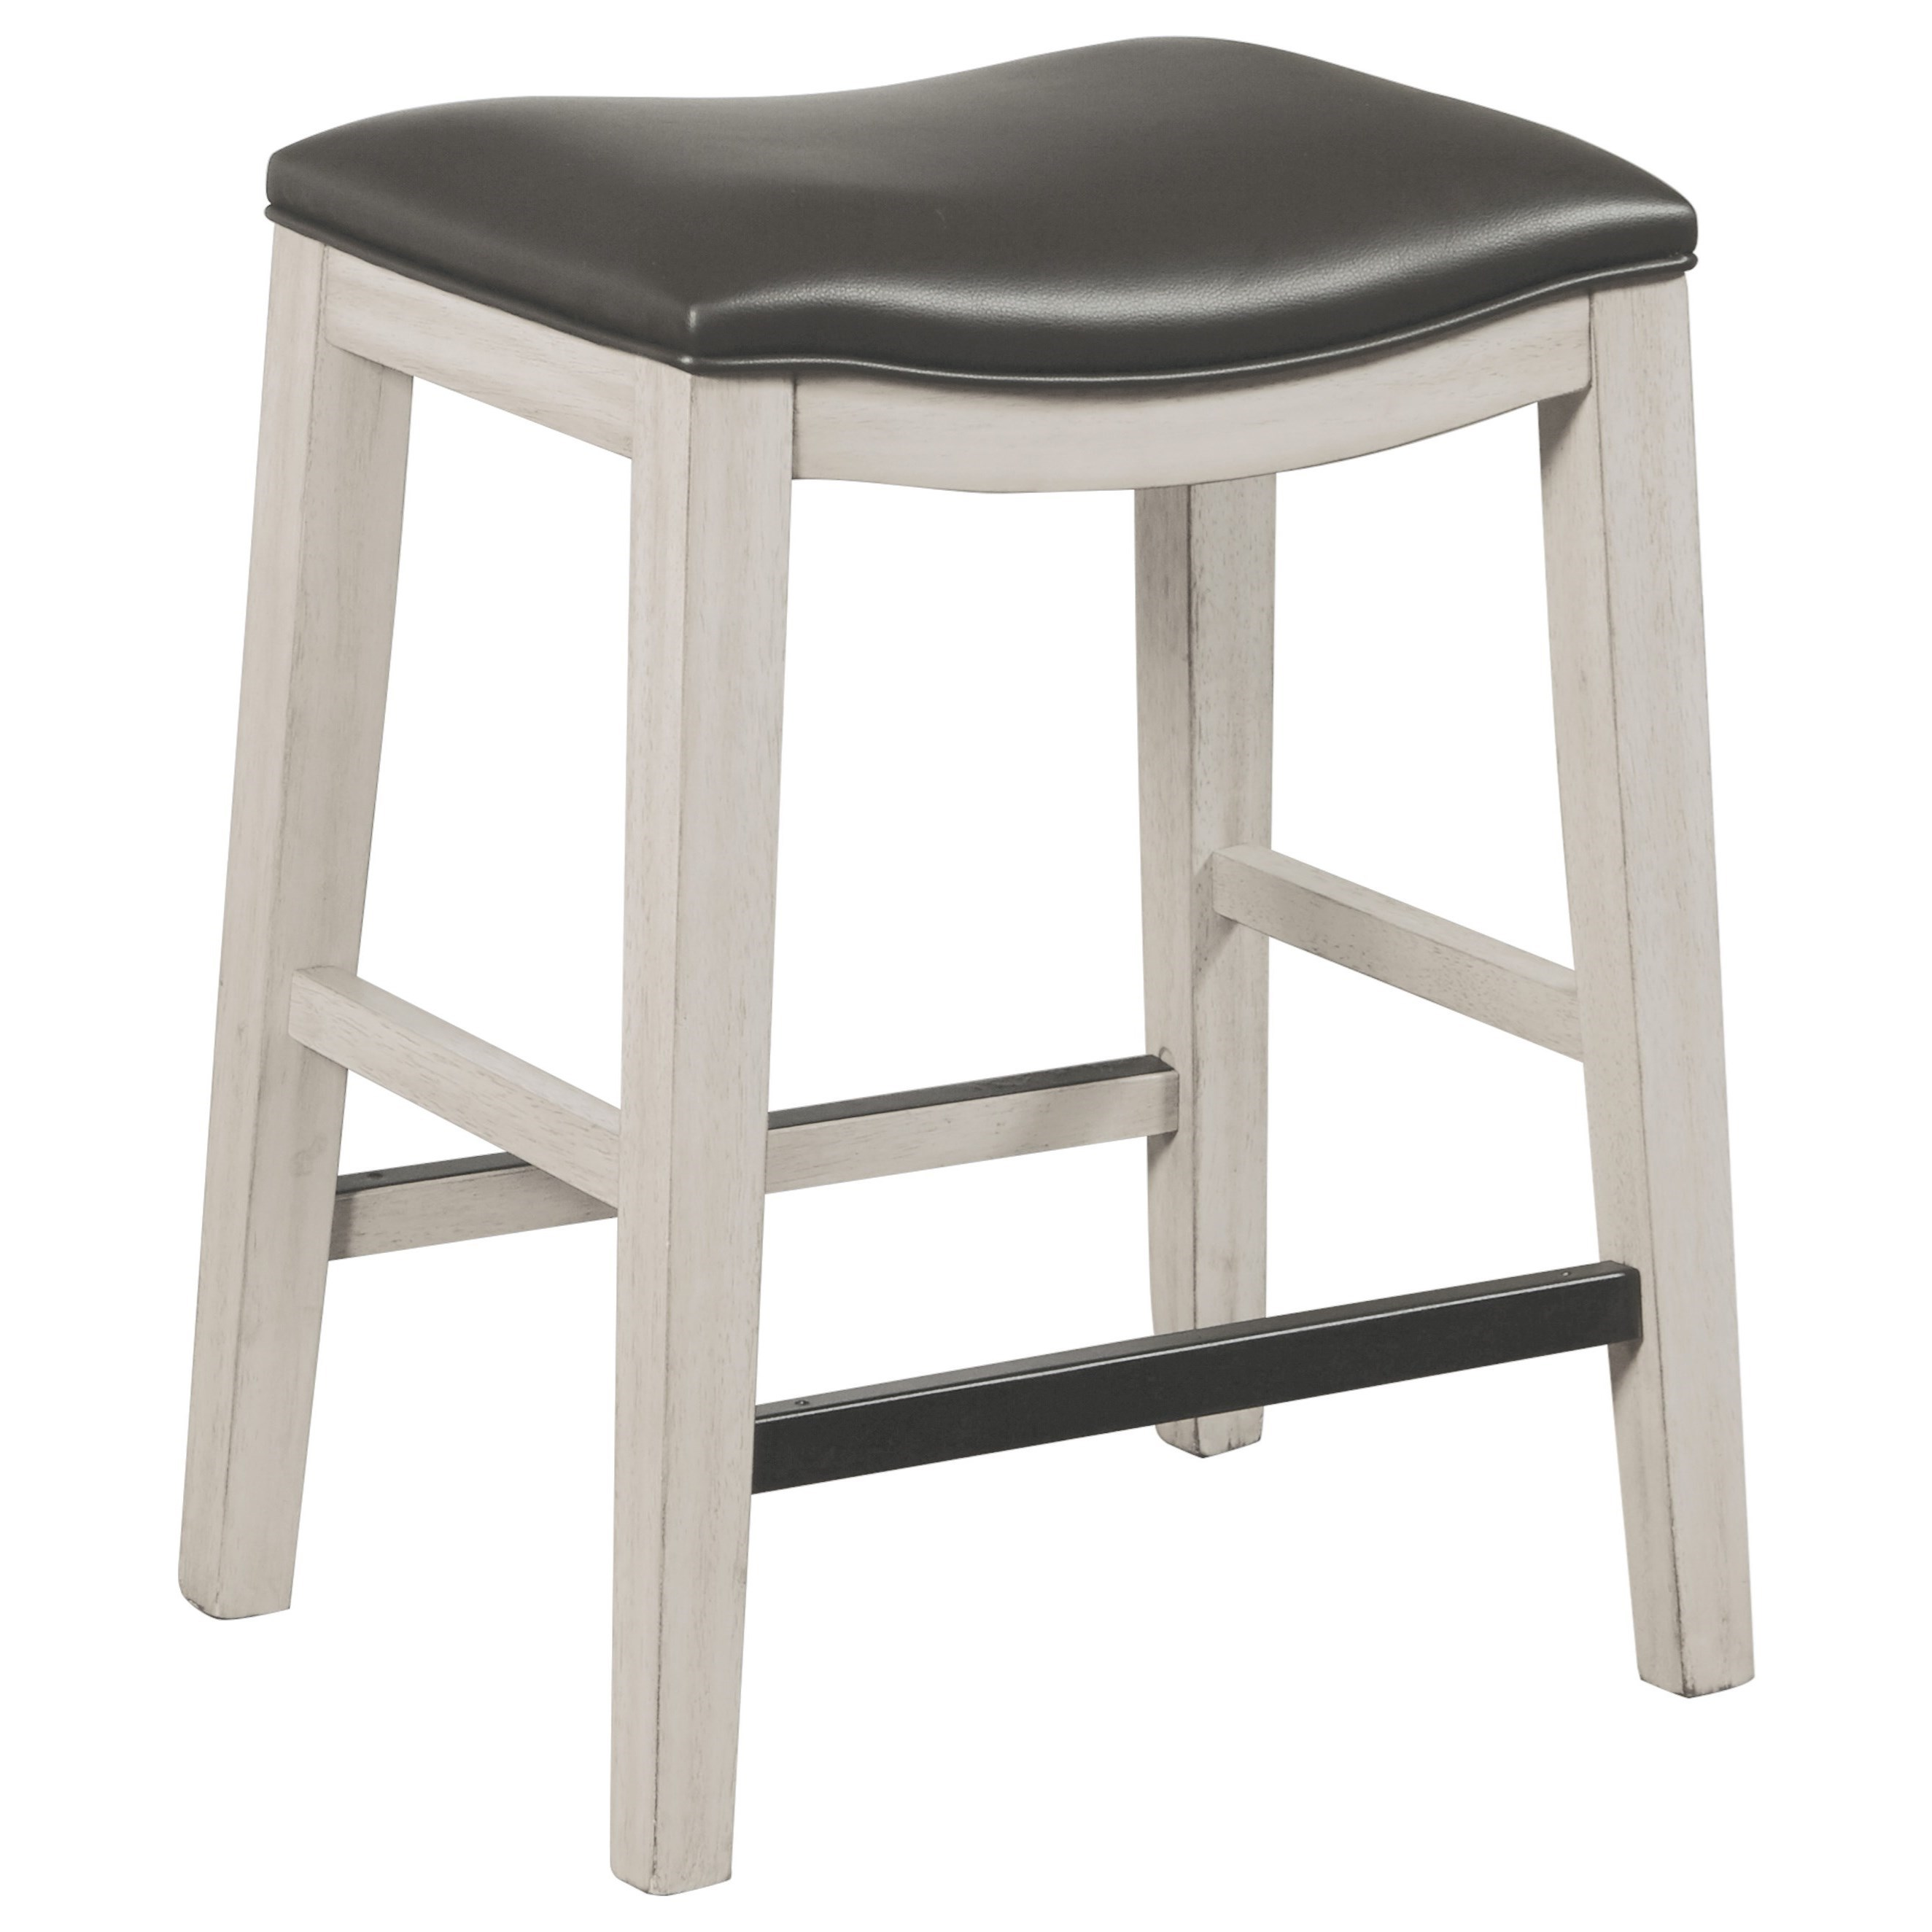 Mayfield Mayfield Backless Stool by Samuel Lawrence at Morris Home